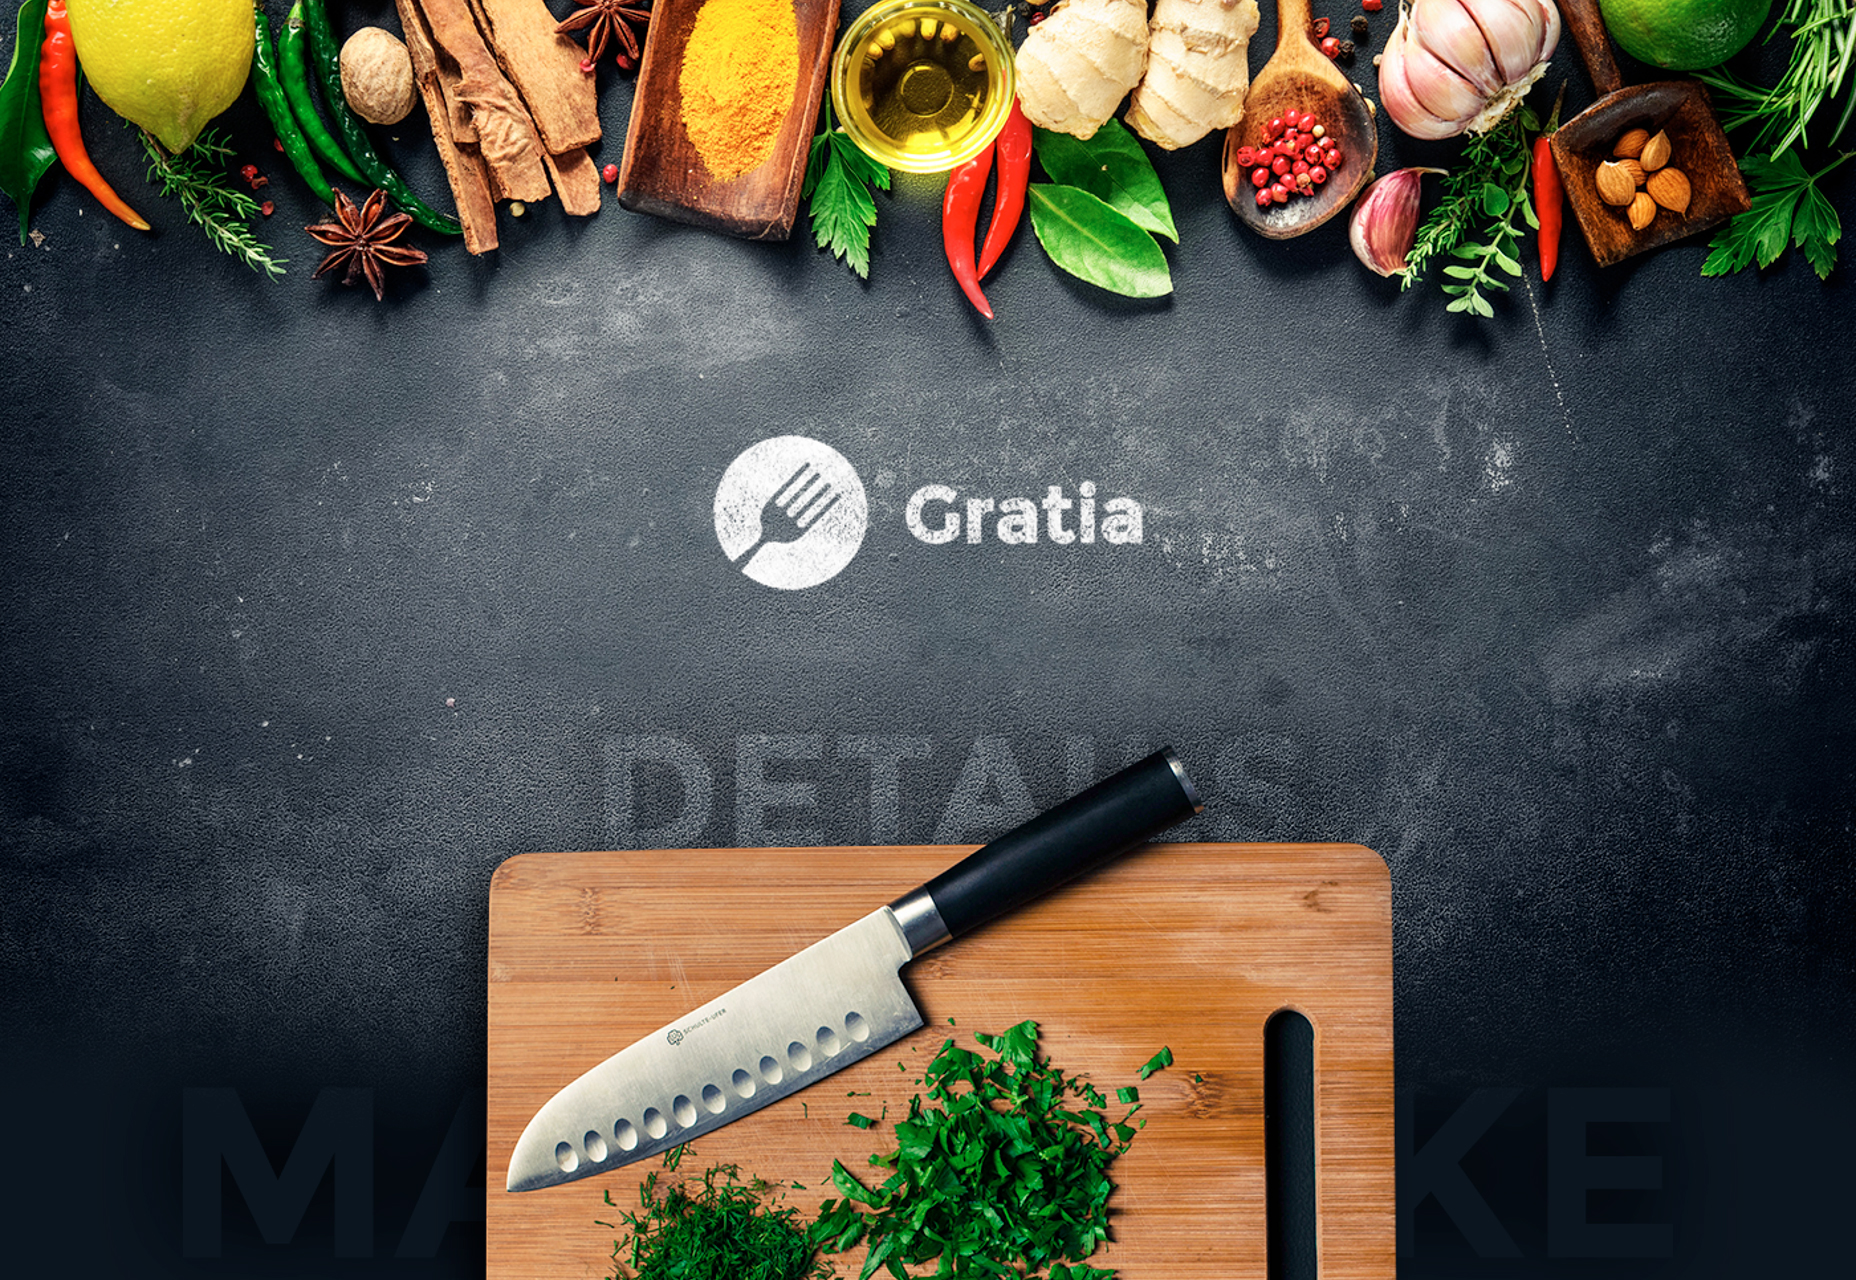 Gratia: Beautifully Crafted Restaurant PSD Template